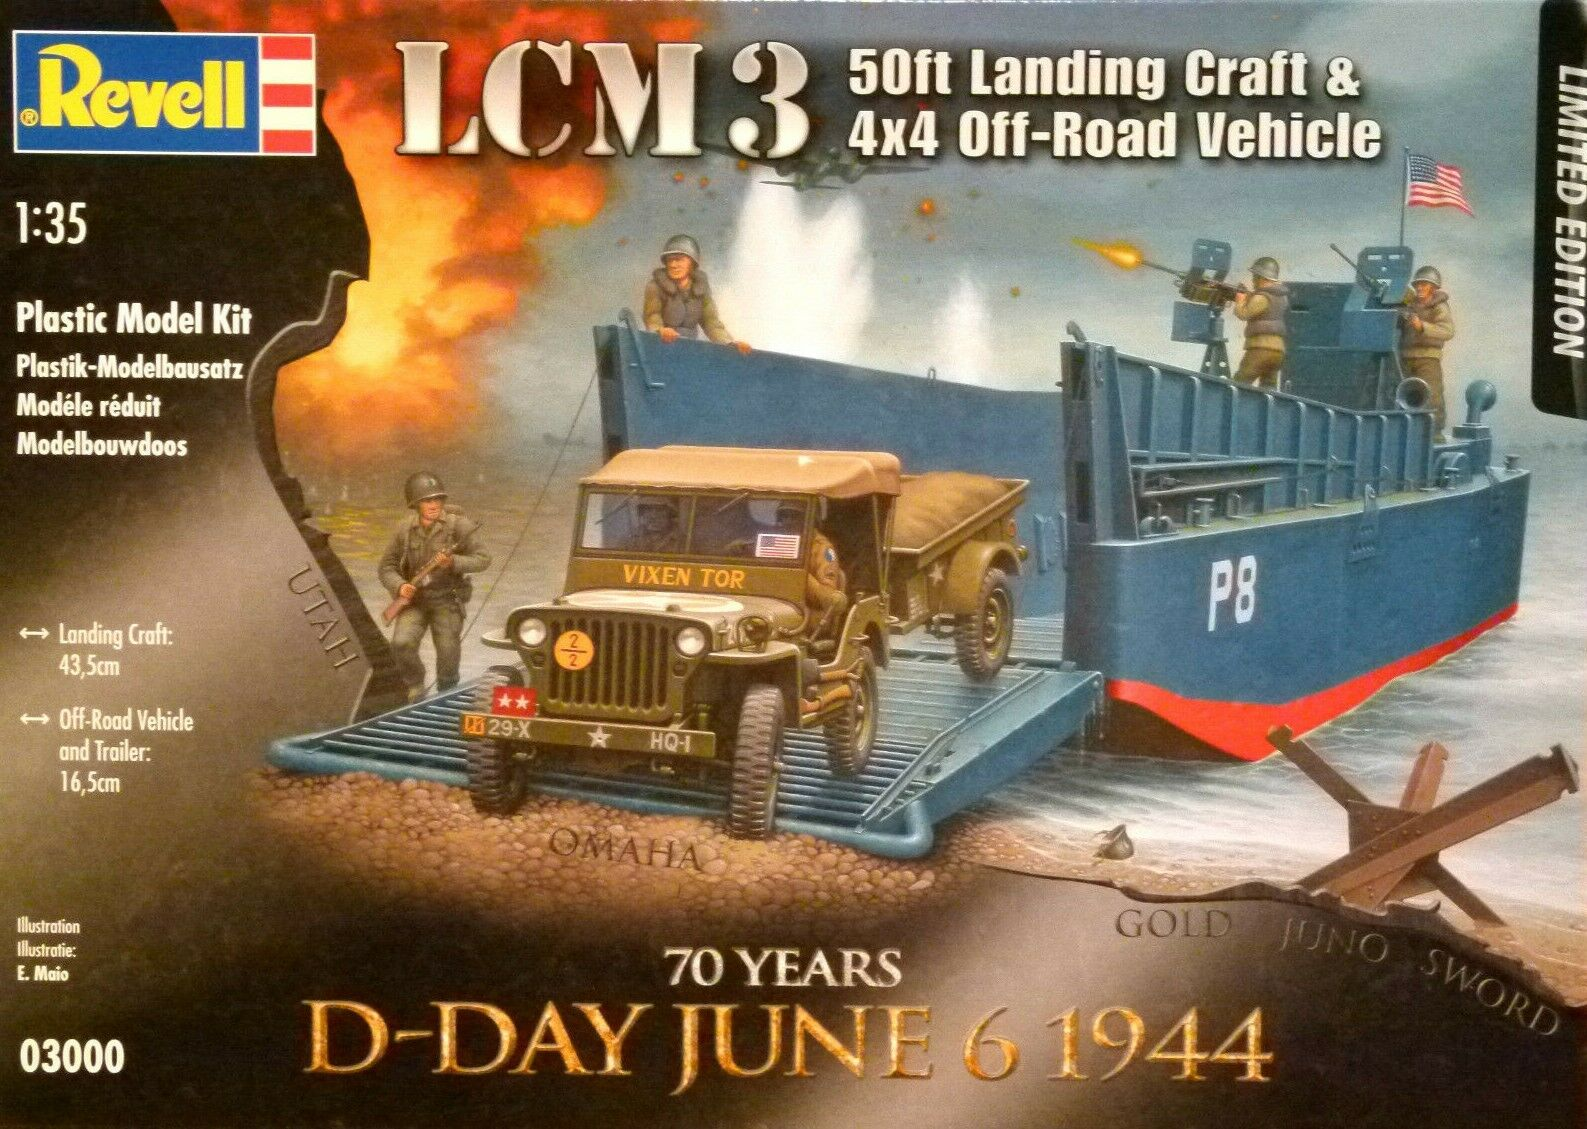 Revell 1 35 LCM 3 Landing Craft And Jeep With Trailer Vehicle Model Kit